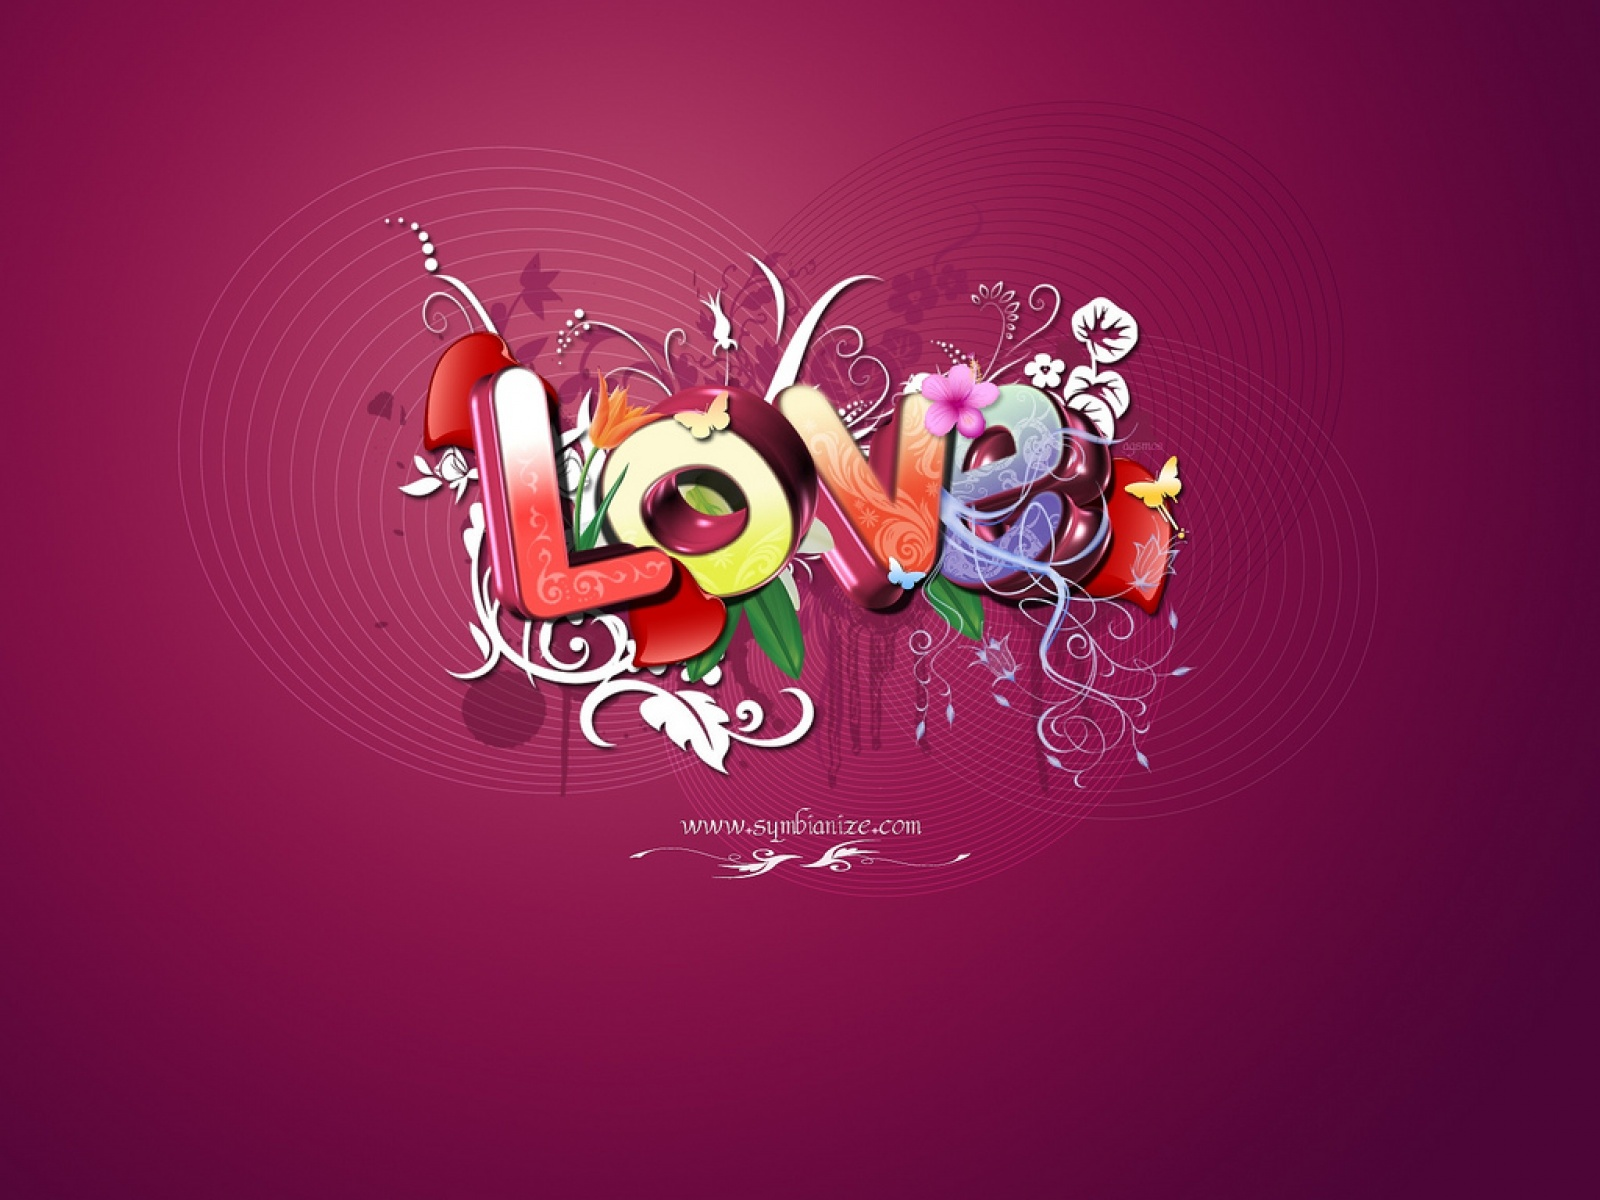 valentines day hd desktop backgrounds wallpapers valentines day hd 1600x1200